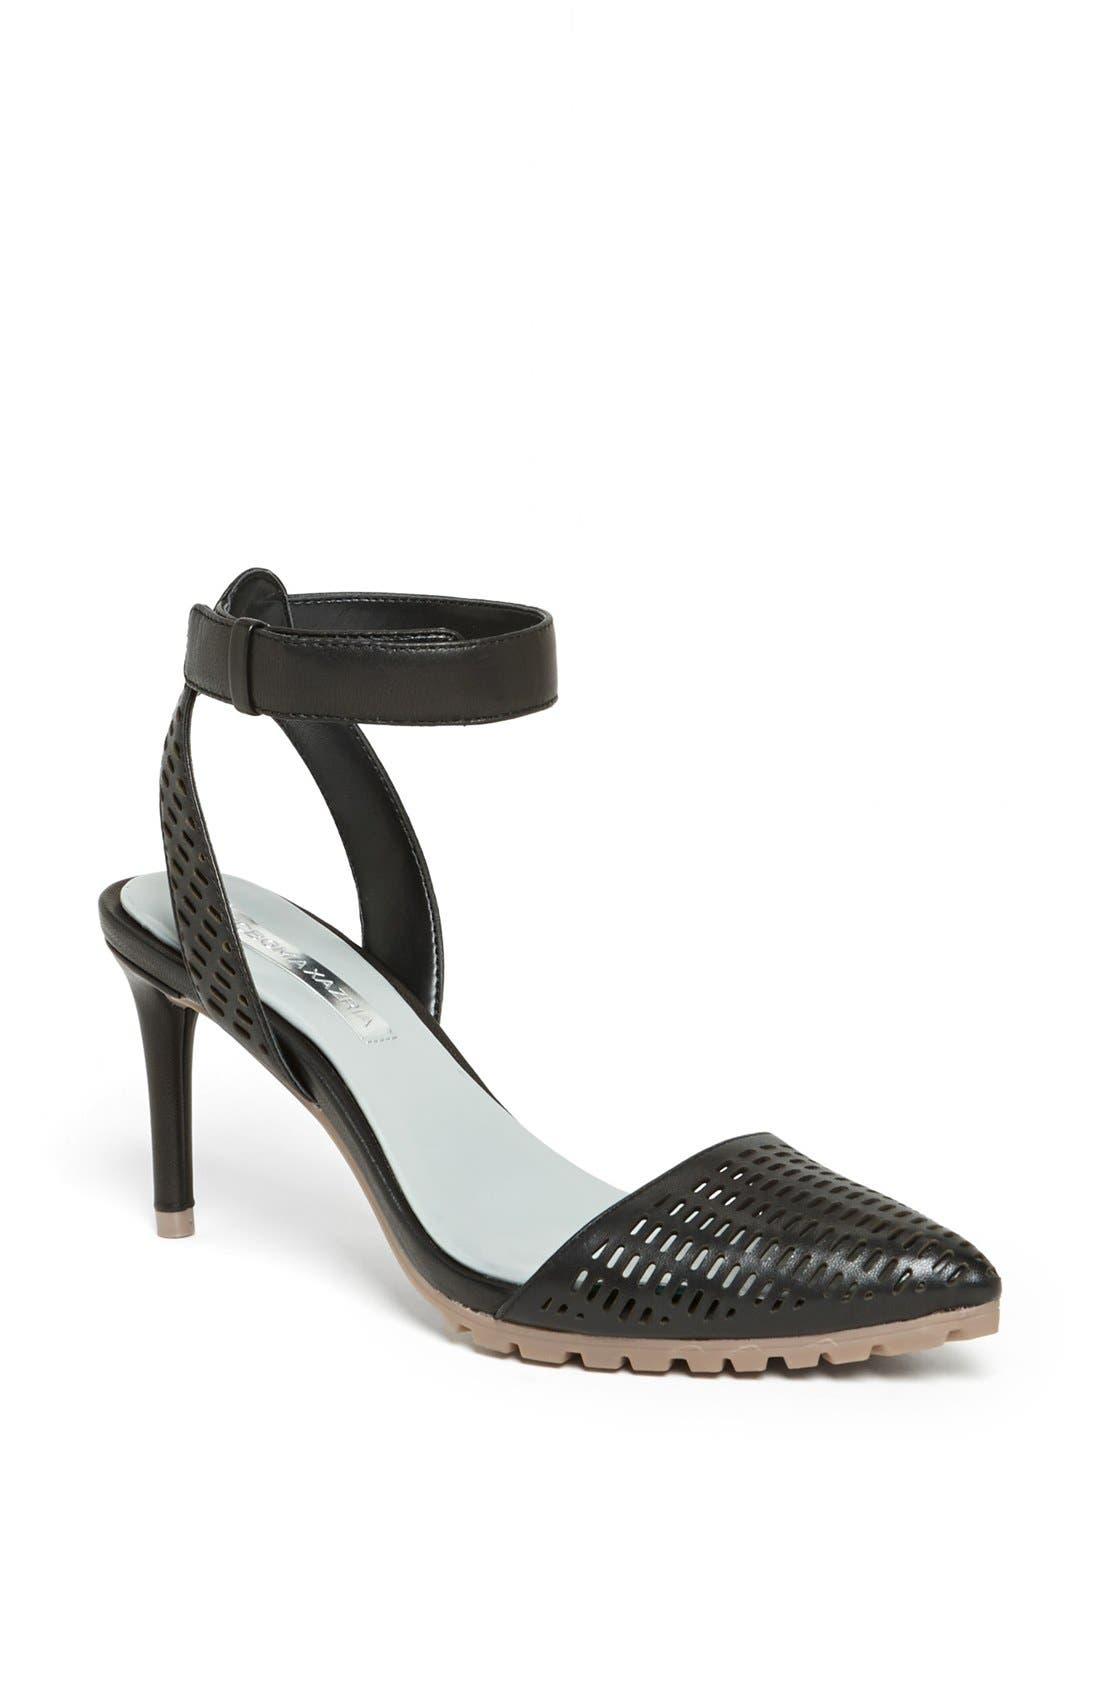 Alternate Image 1 Selected - BCBGMAXAZRIA 'Coll' Perforated Leather Ankle Strap Sandal